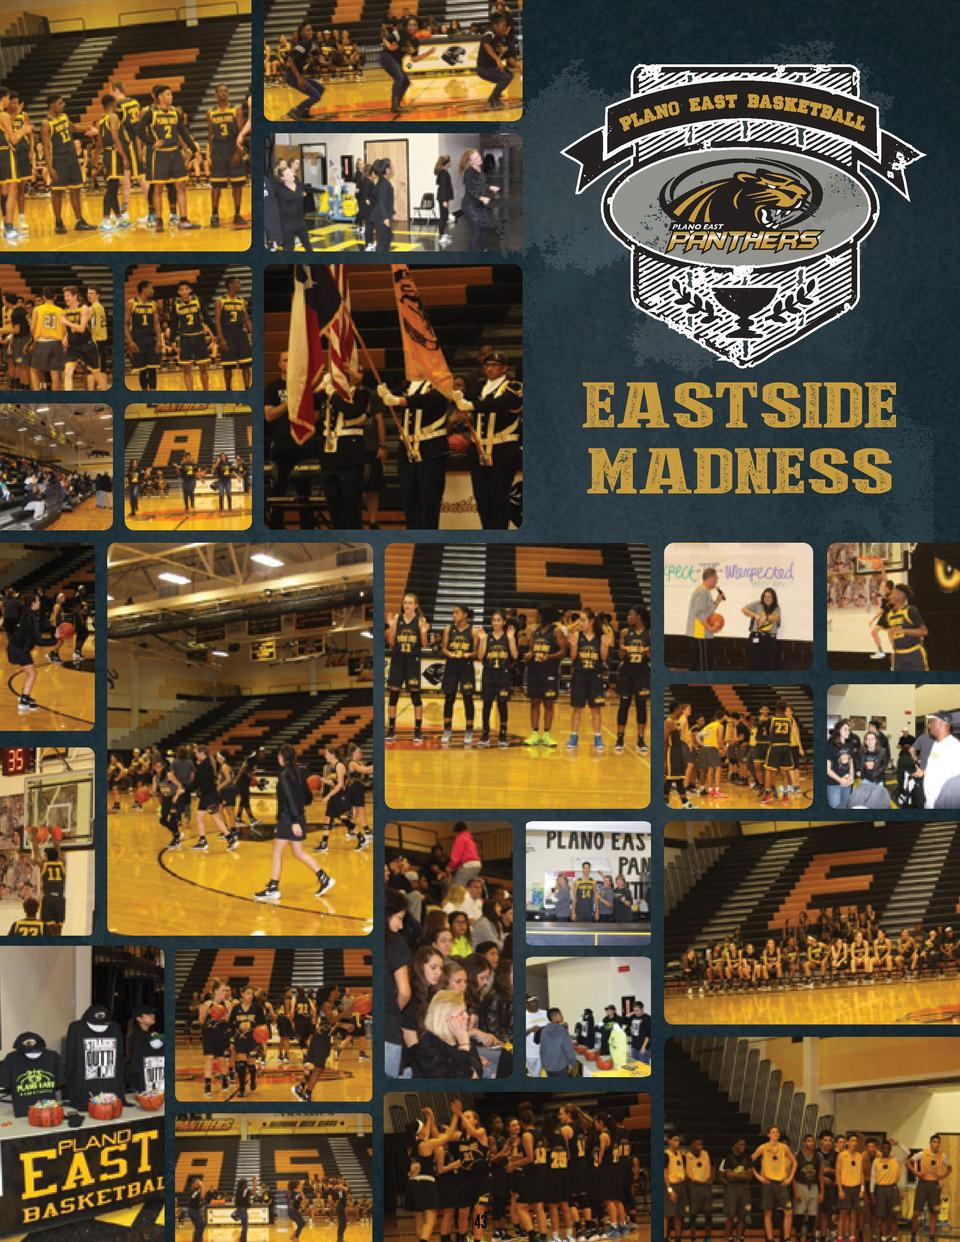 PLANO EAST  EASTSIDE MADNESS  43